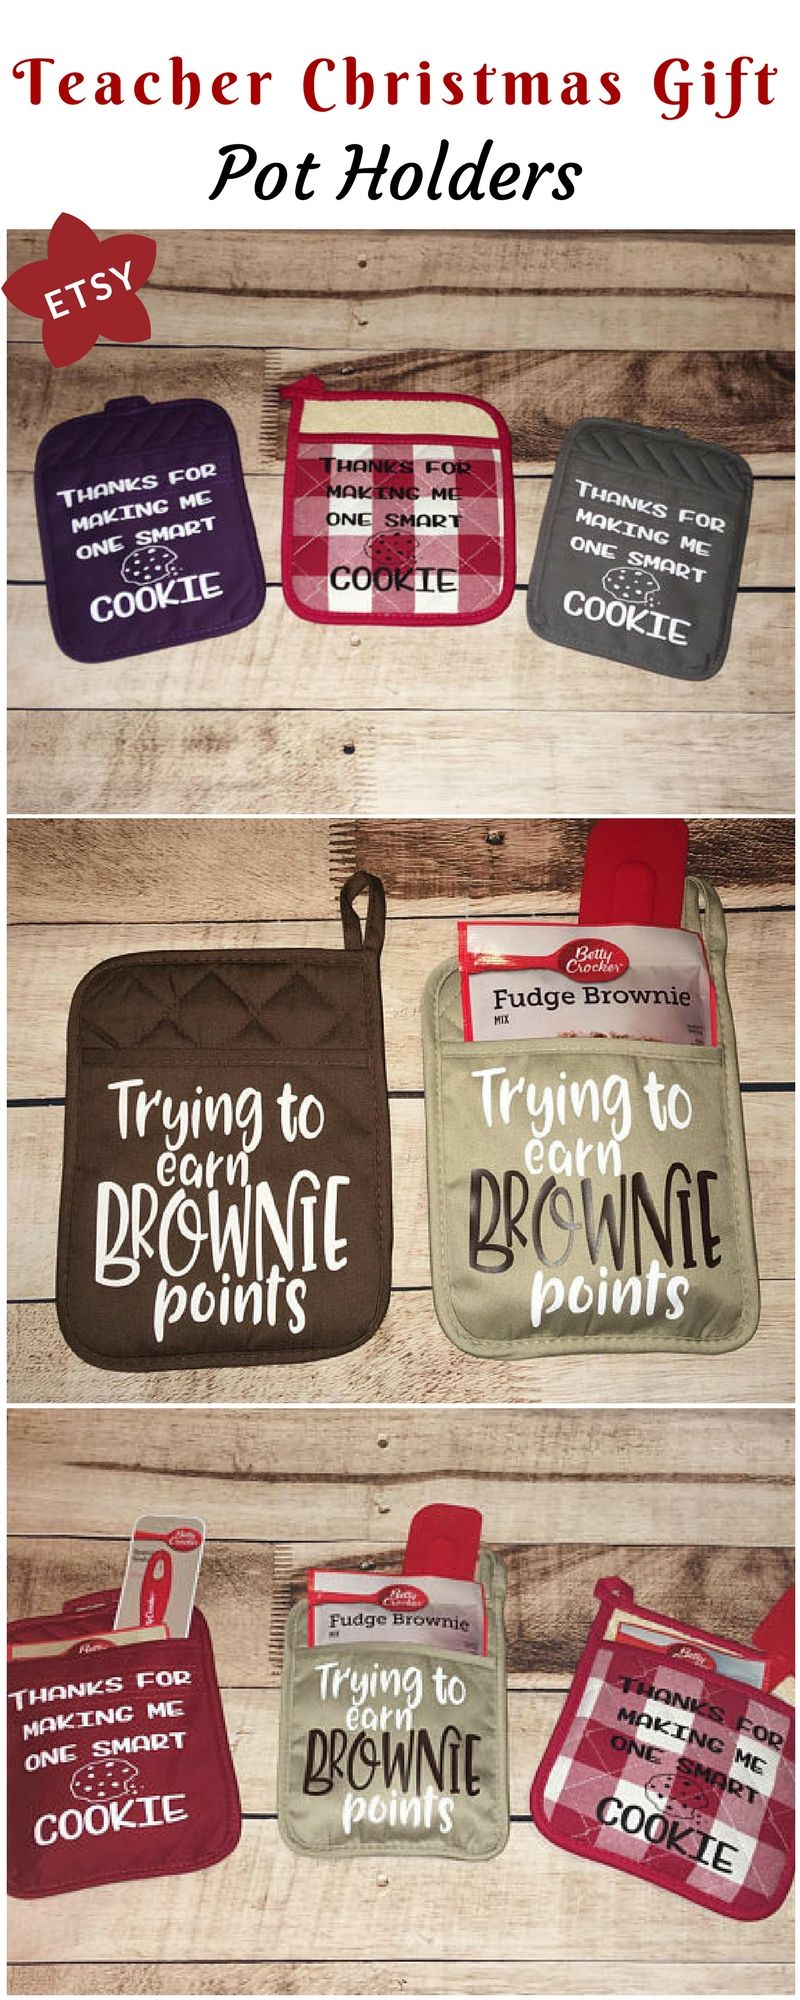 These Oven Mitts Will Be Sure To Make Memorable And Unique Teacher